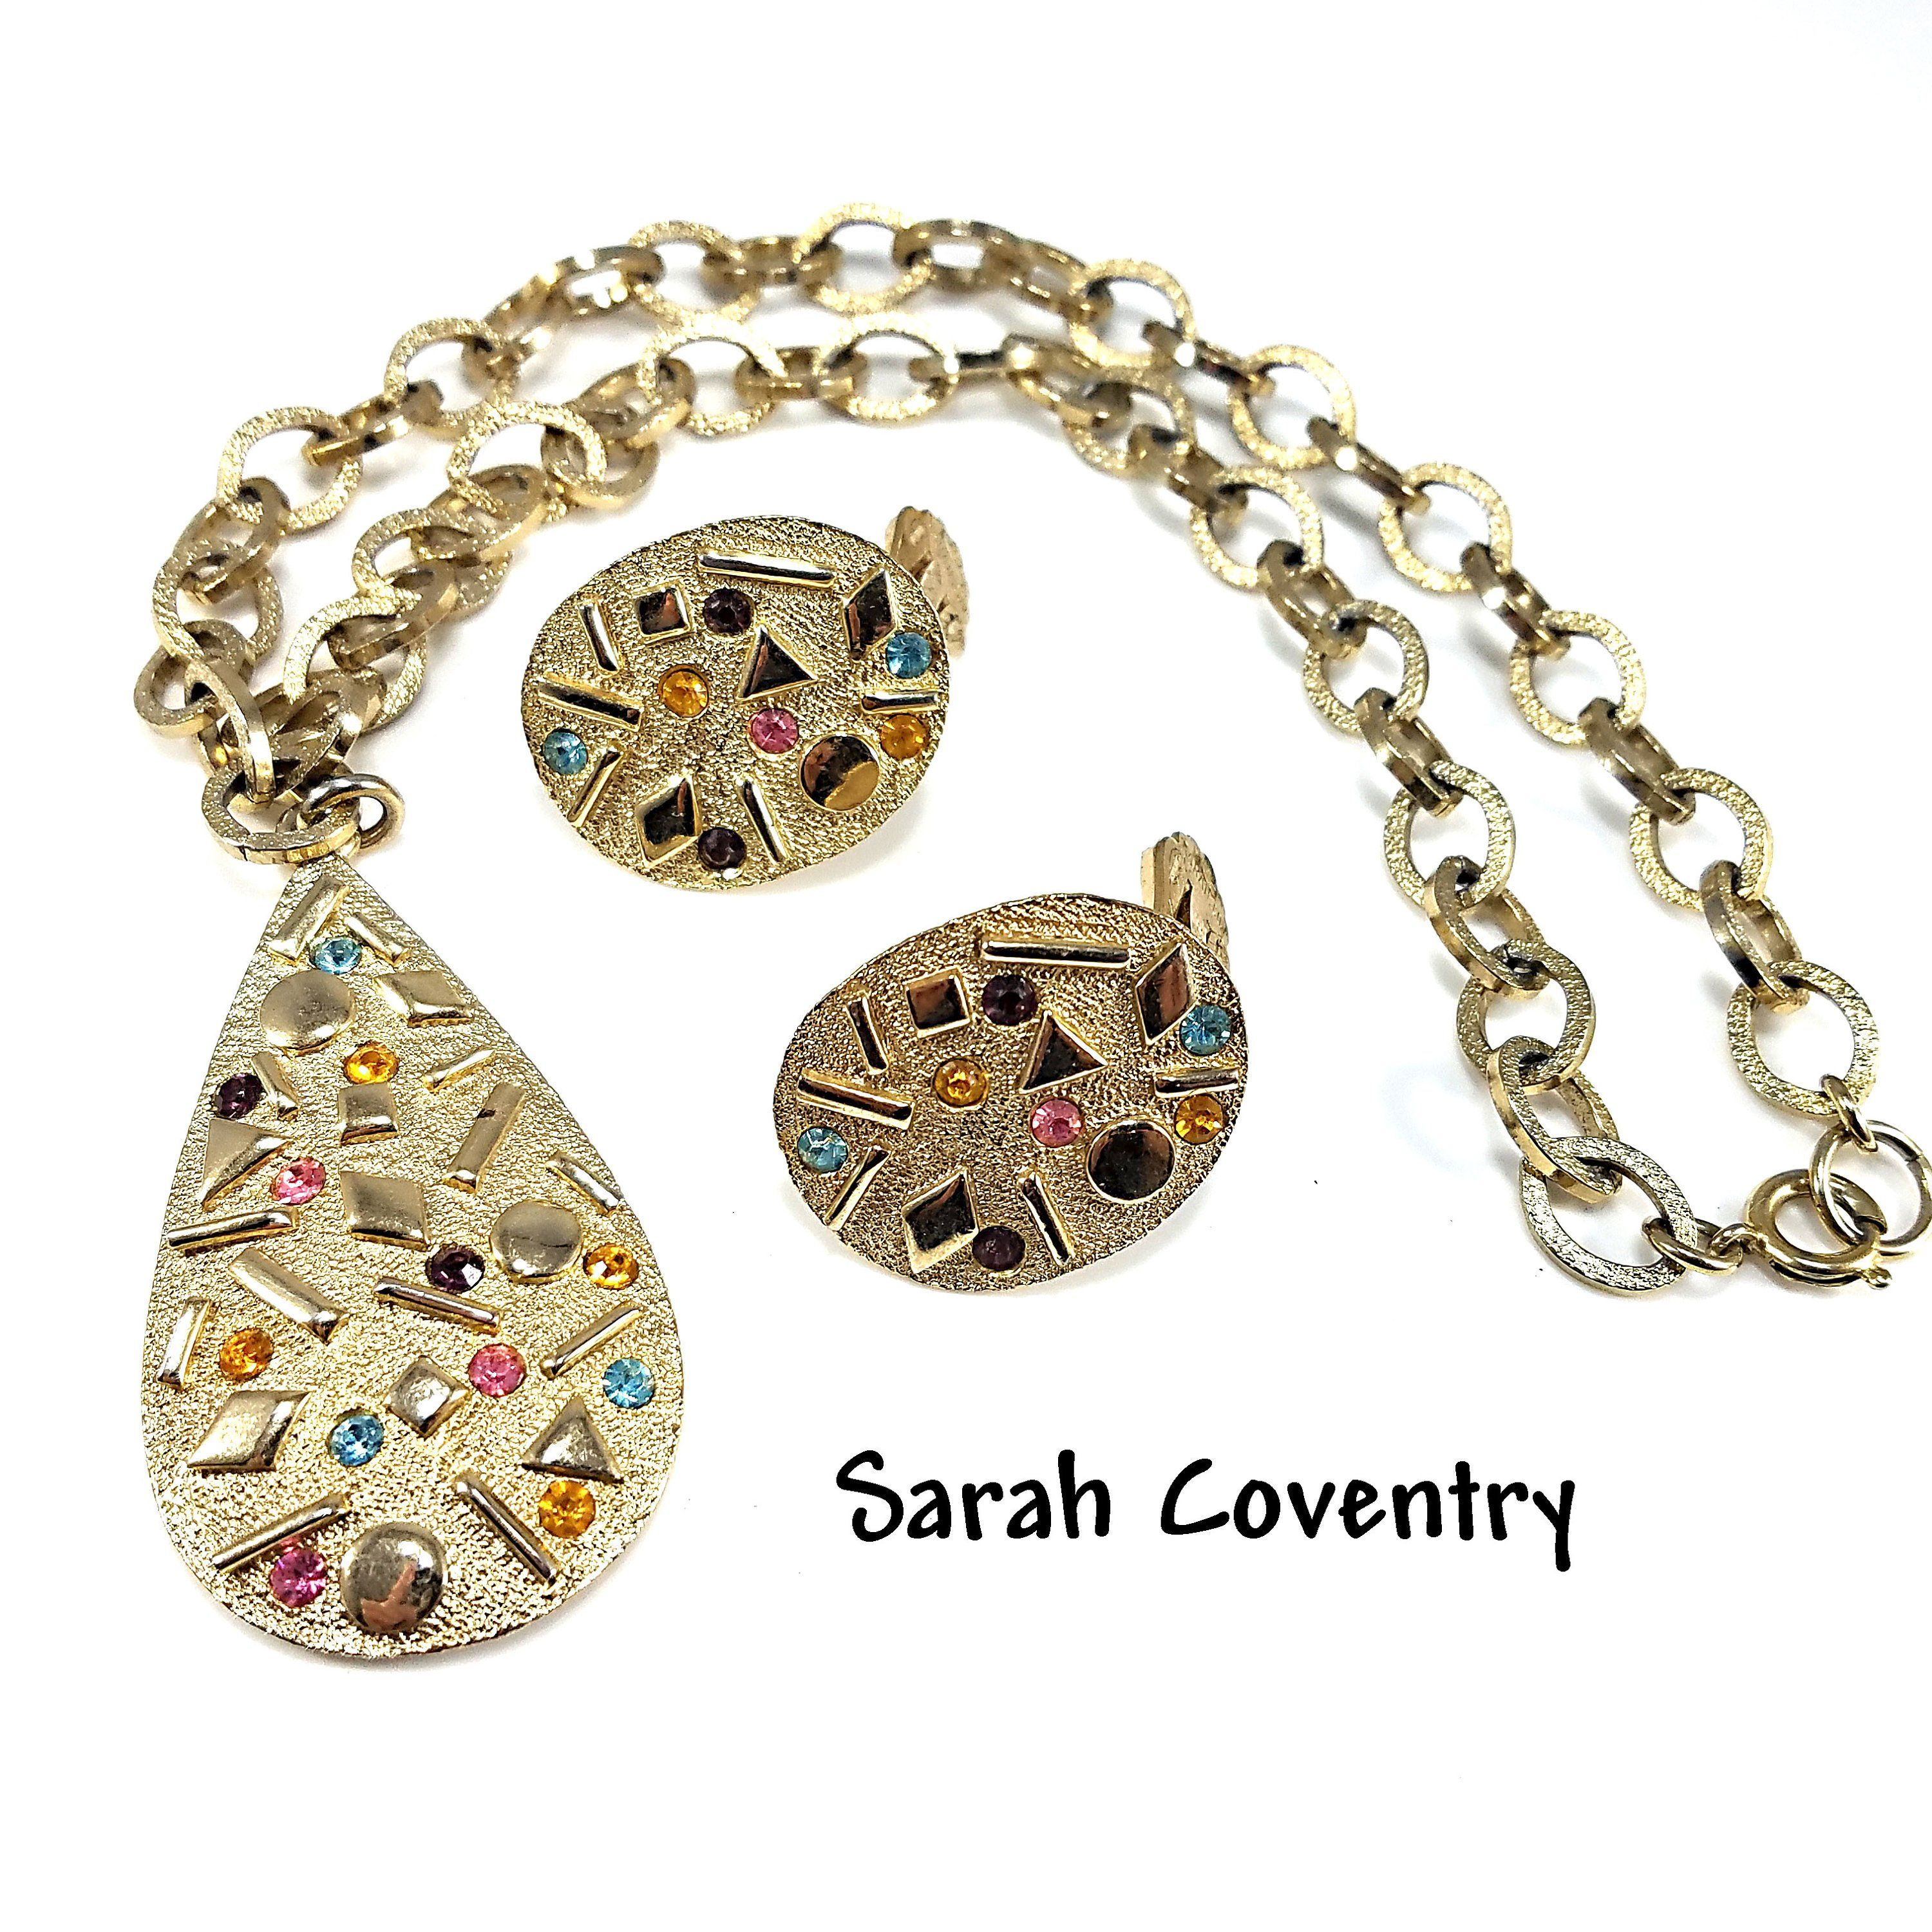 Sale Vintage Sarah Coventry Large Floral Earrings Hand Set Rhinestones Gold Plated